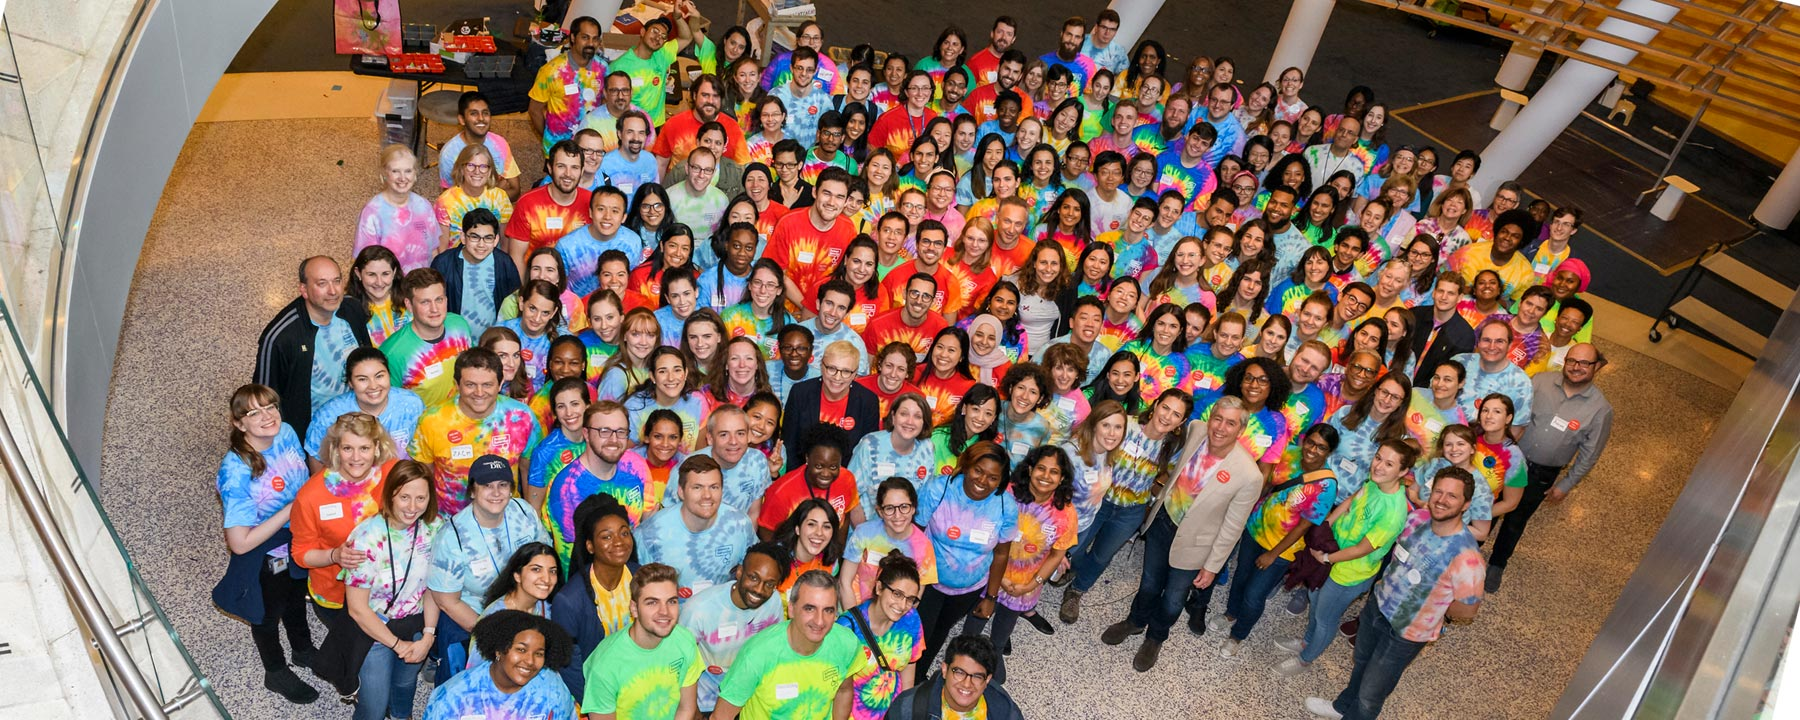 Science Saturday Scientist Volunteers, 2019, Photo credit Scott Rudd Photography